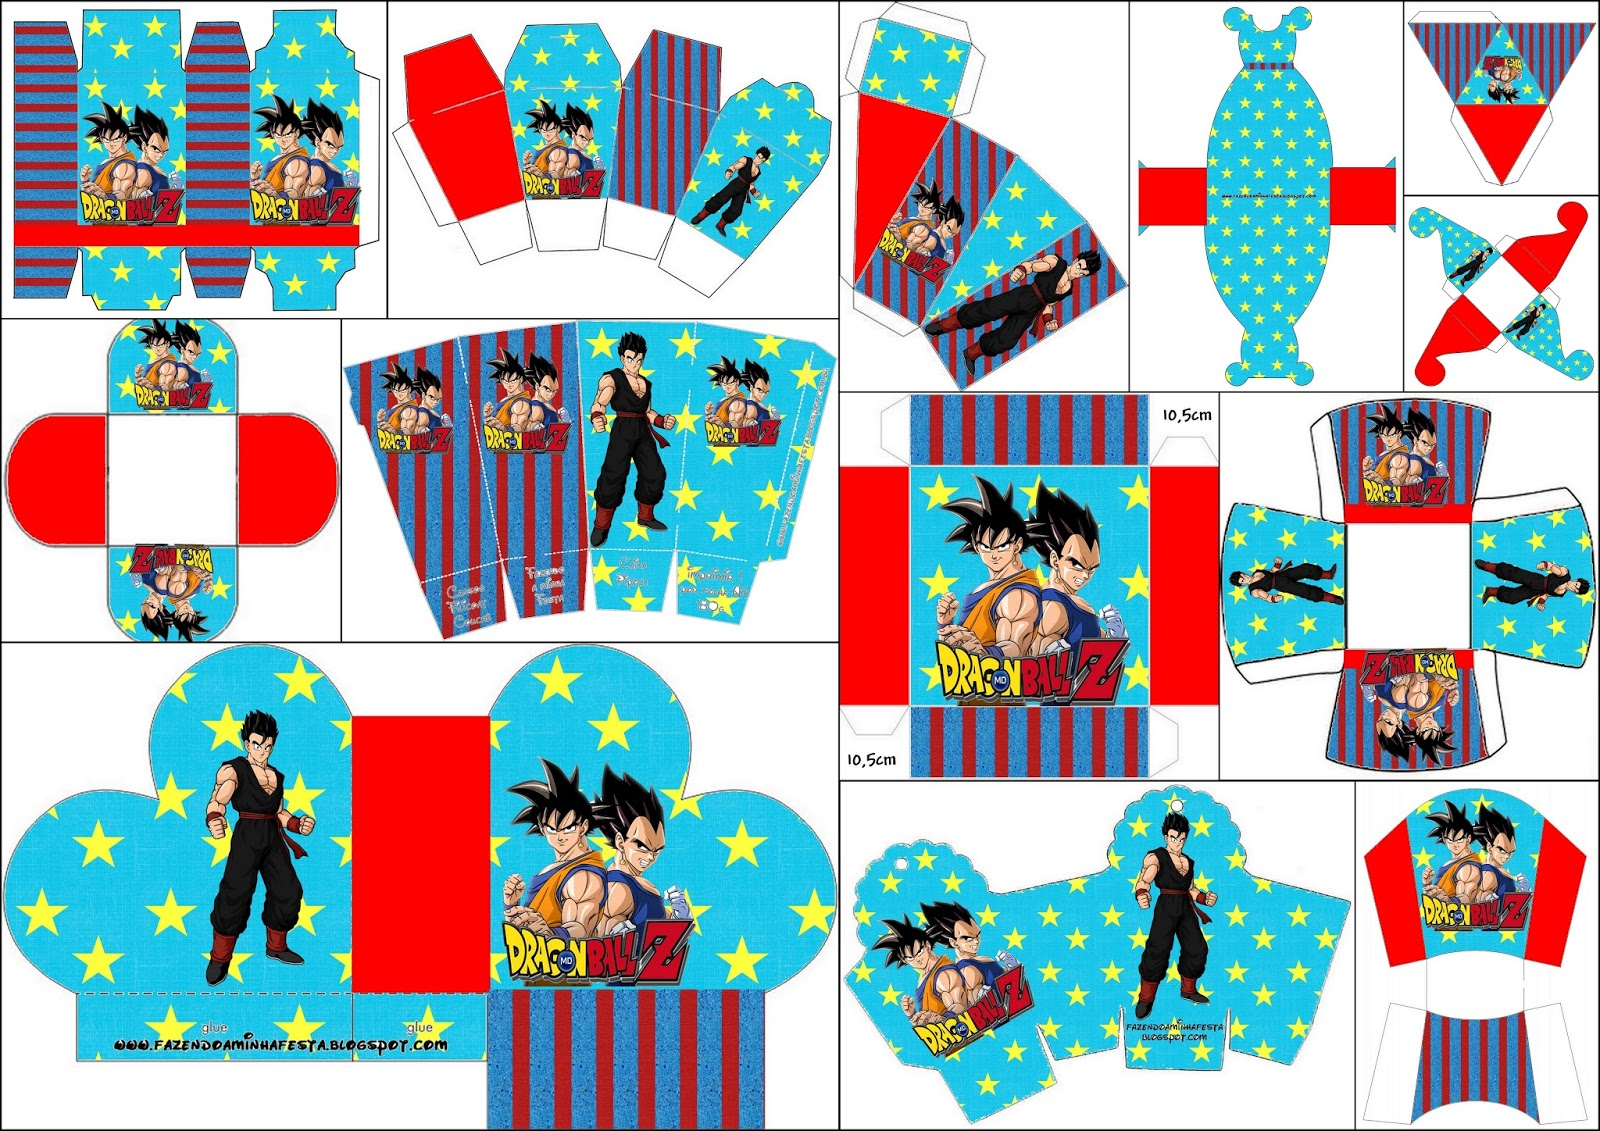 Dragon Ball Z Free Printable Boxes. - Oh My Fiesta! for Geeks